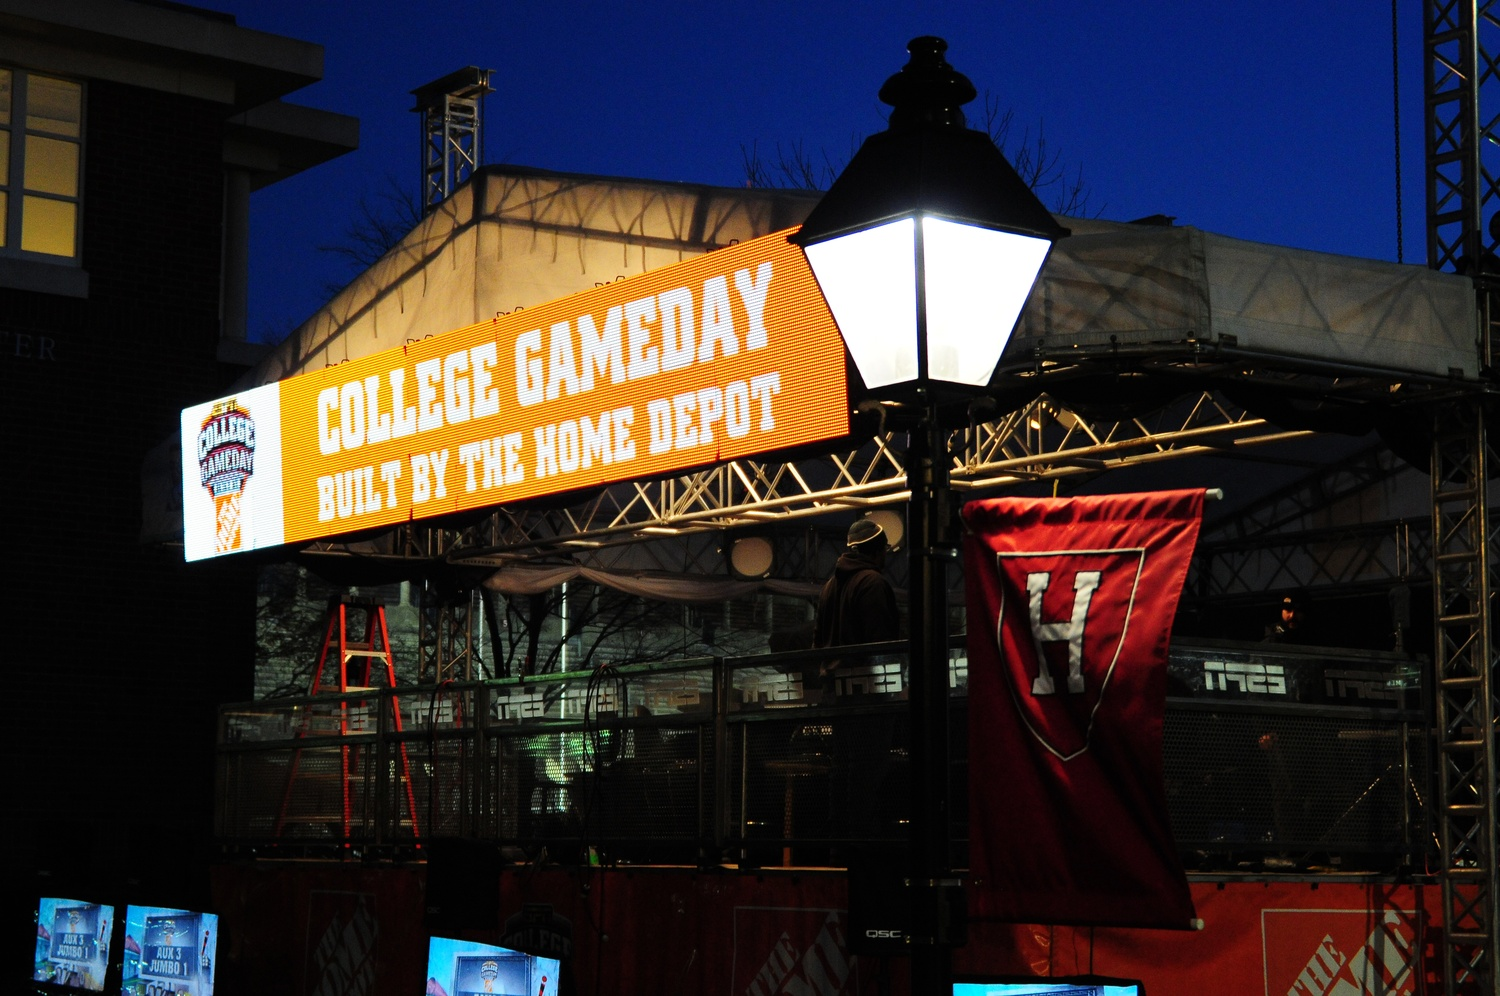 Harvard, teaming with ESPN's College GameDay, prepares for the famous college football show featuring host Chris Fowler and analysts Lee Corso, Kirk Herbstreit, Desmond Howard, and David Pollack.  The show will air on ESPN on Saturday from 9 a.m. until 12:30 p.m., up until the kickoff of The Game versus Yale.  This is GameDay's first appearance at Harvard.